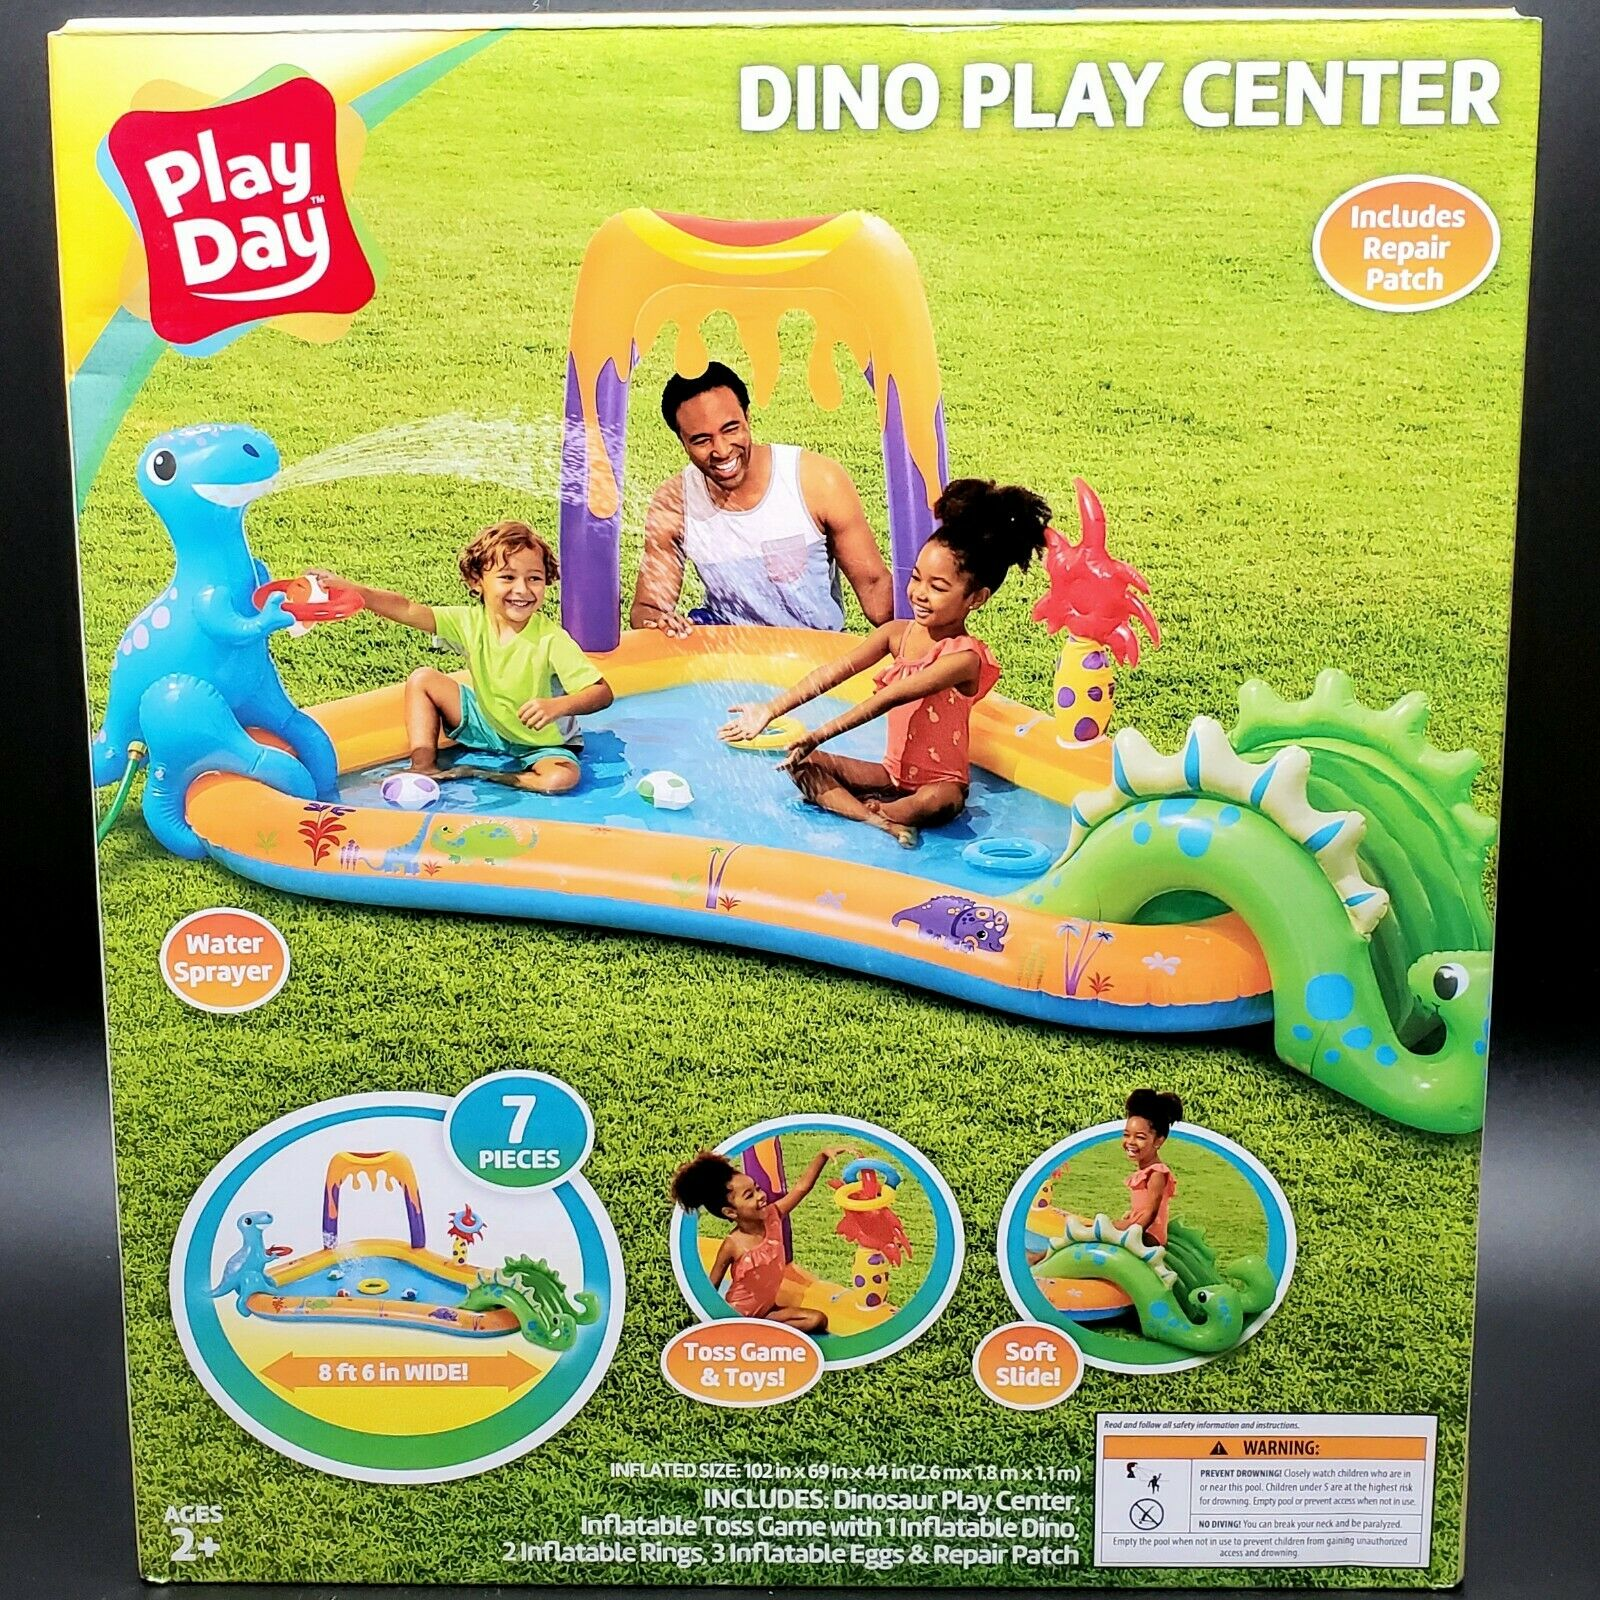 Play Day Dino Play Center Inflatable Pool Water Sprayer Slide Toss Game NEW